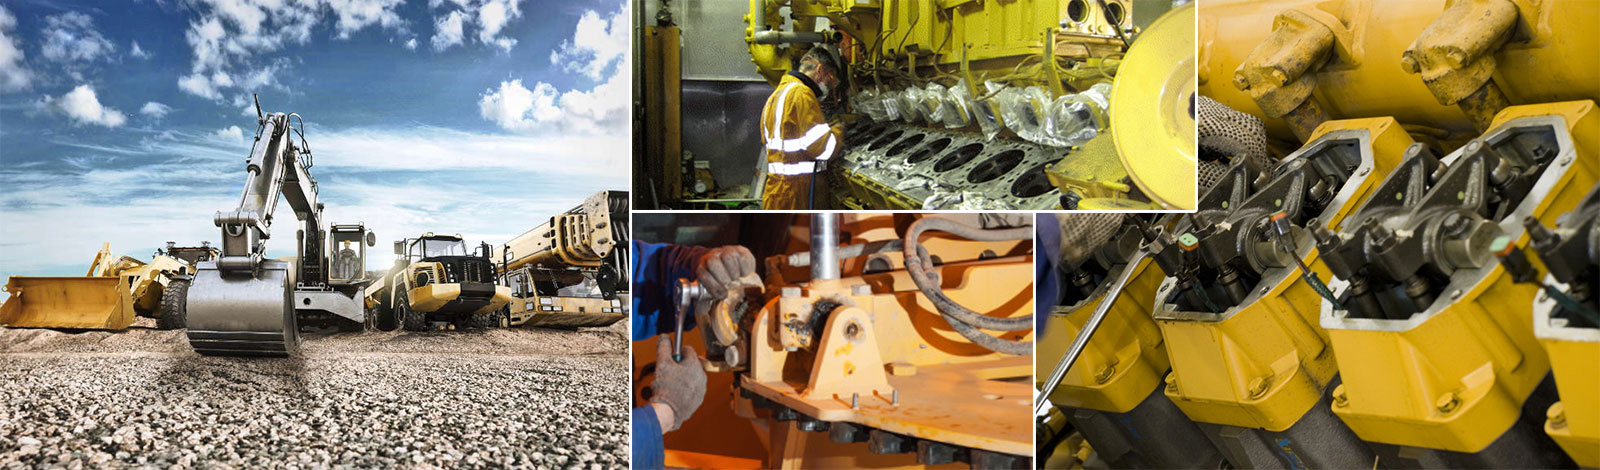 mining-equipment-repair-rebuild